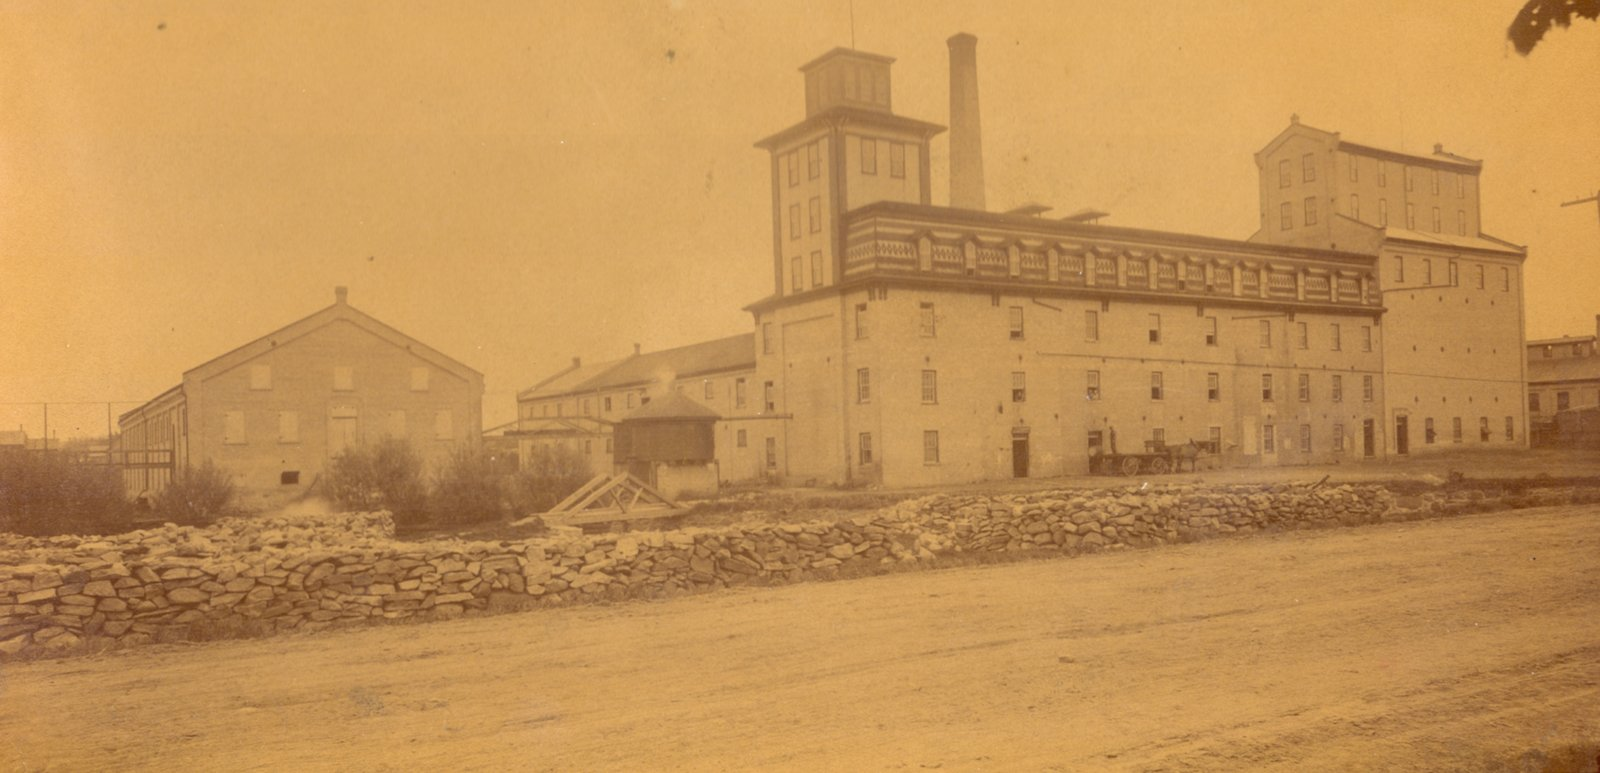 Granite Mills and Waterloo Distillery